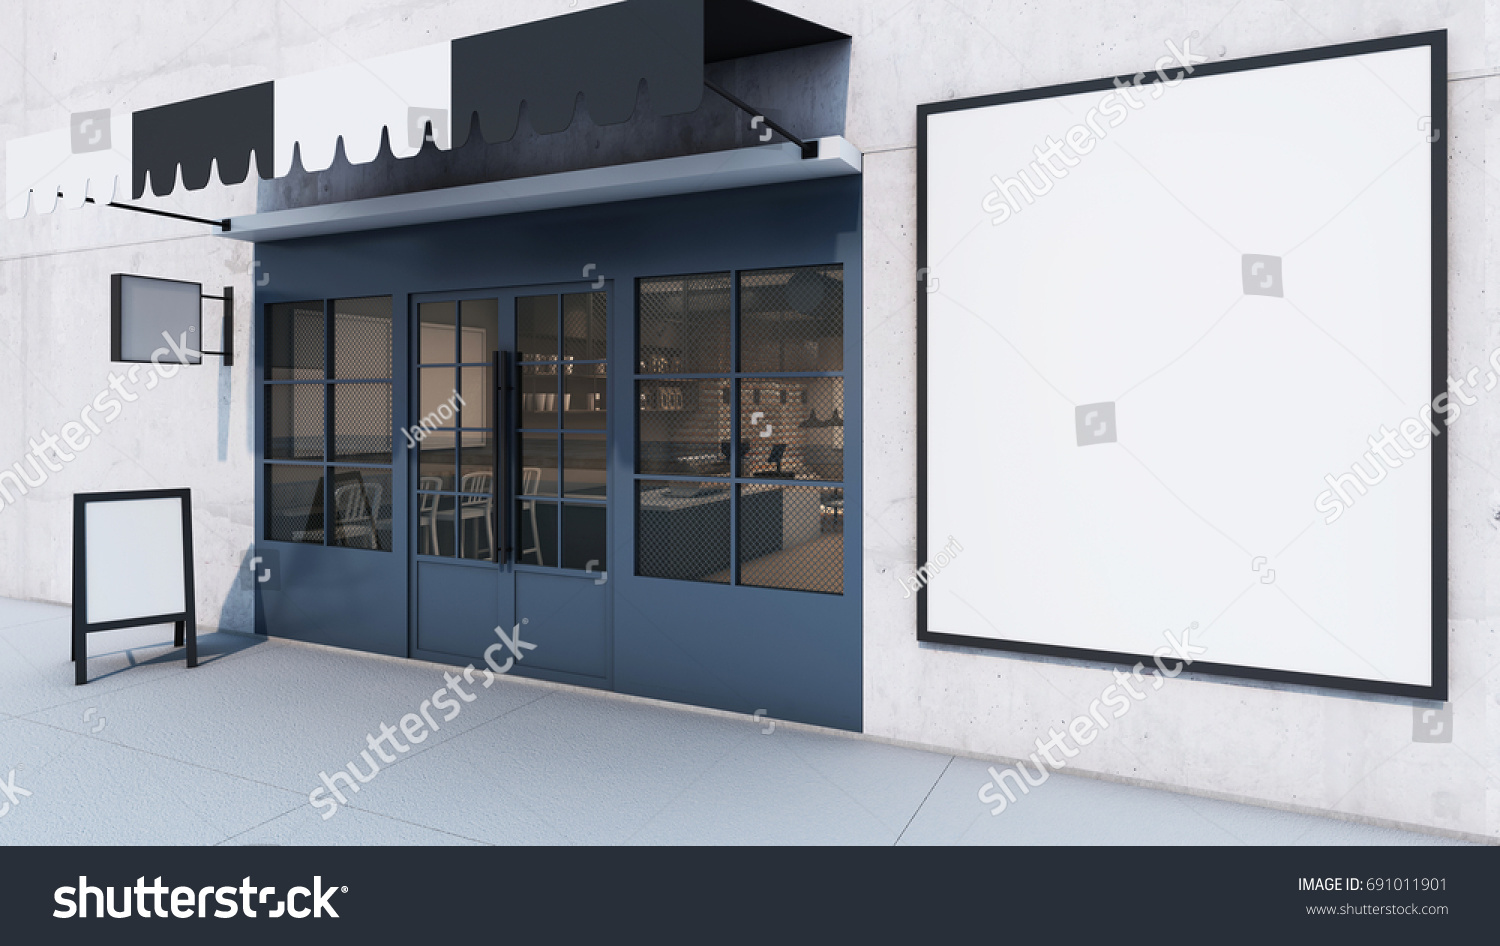 Front View Cafe Shop Restaurant Design Stock Illustration ...